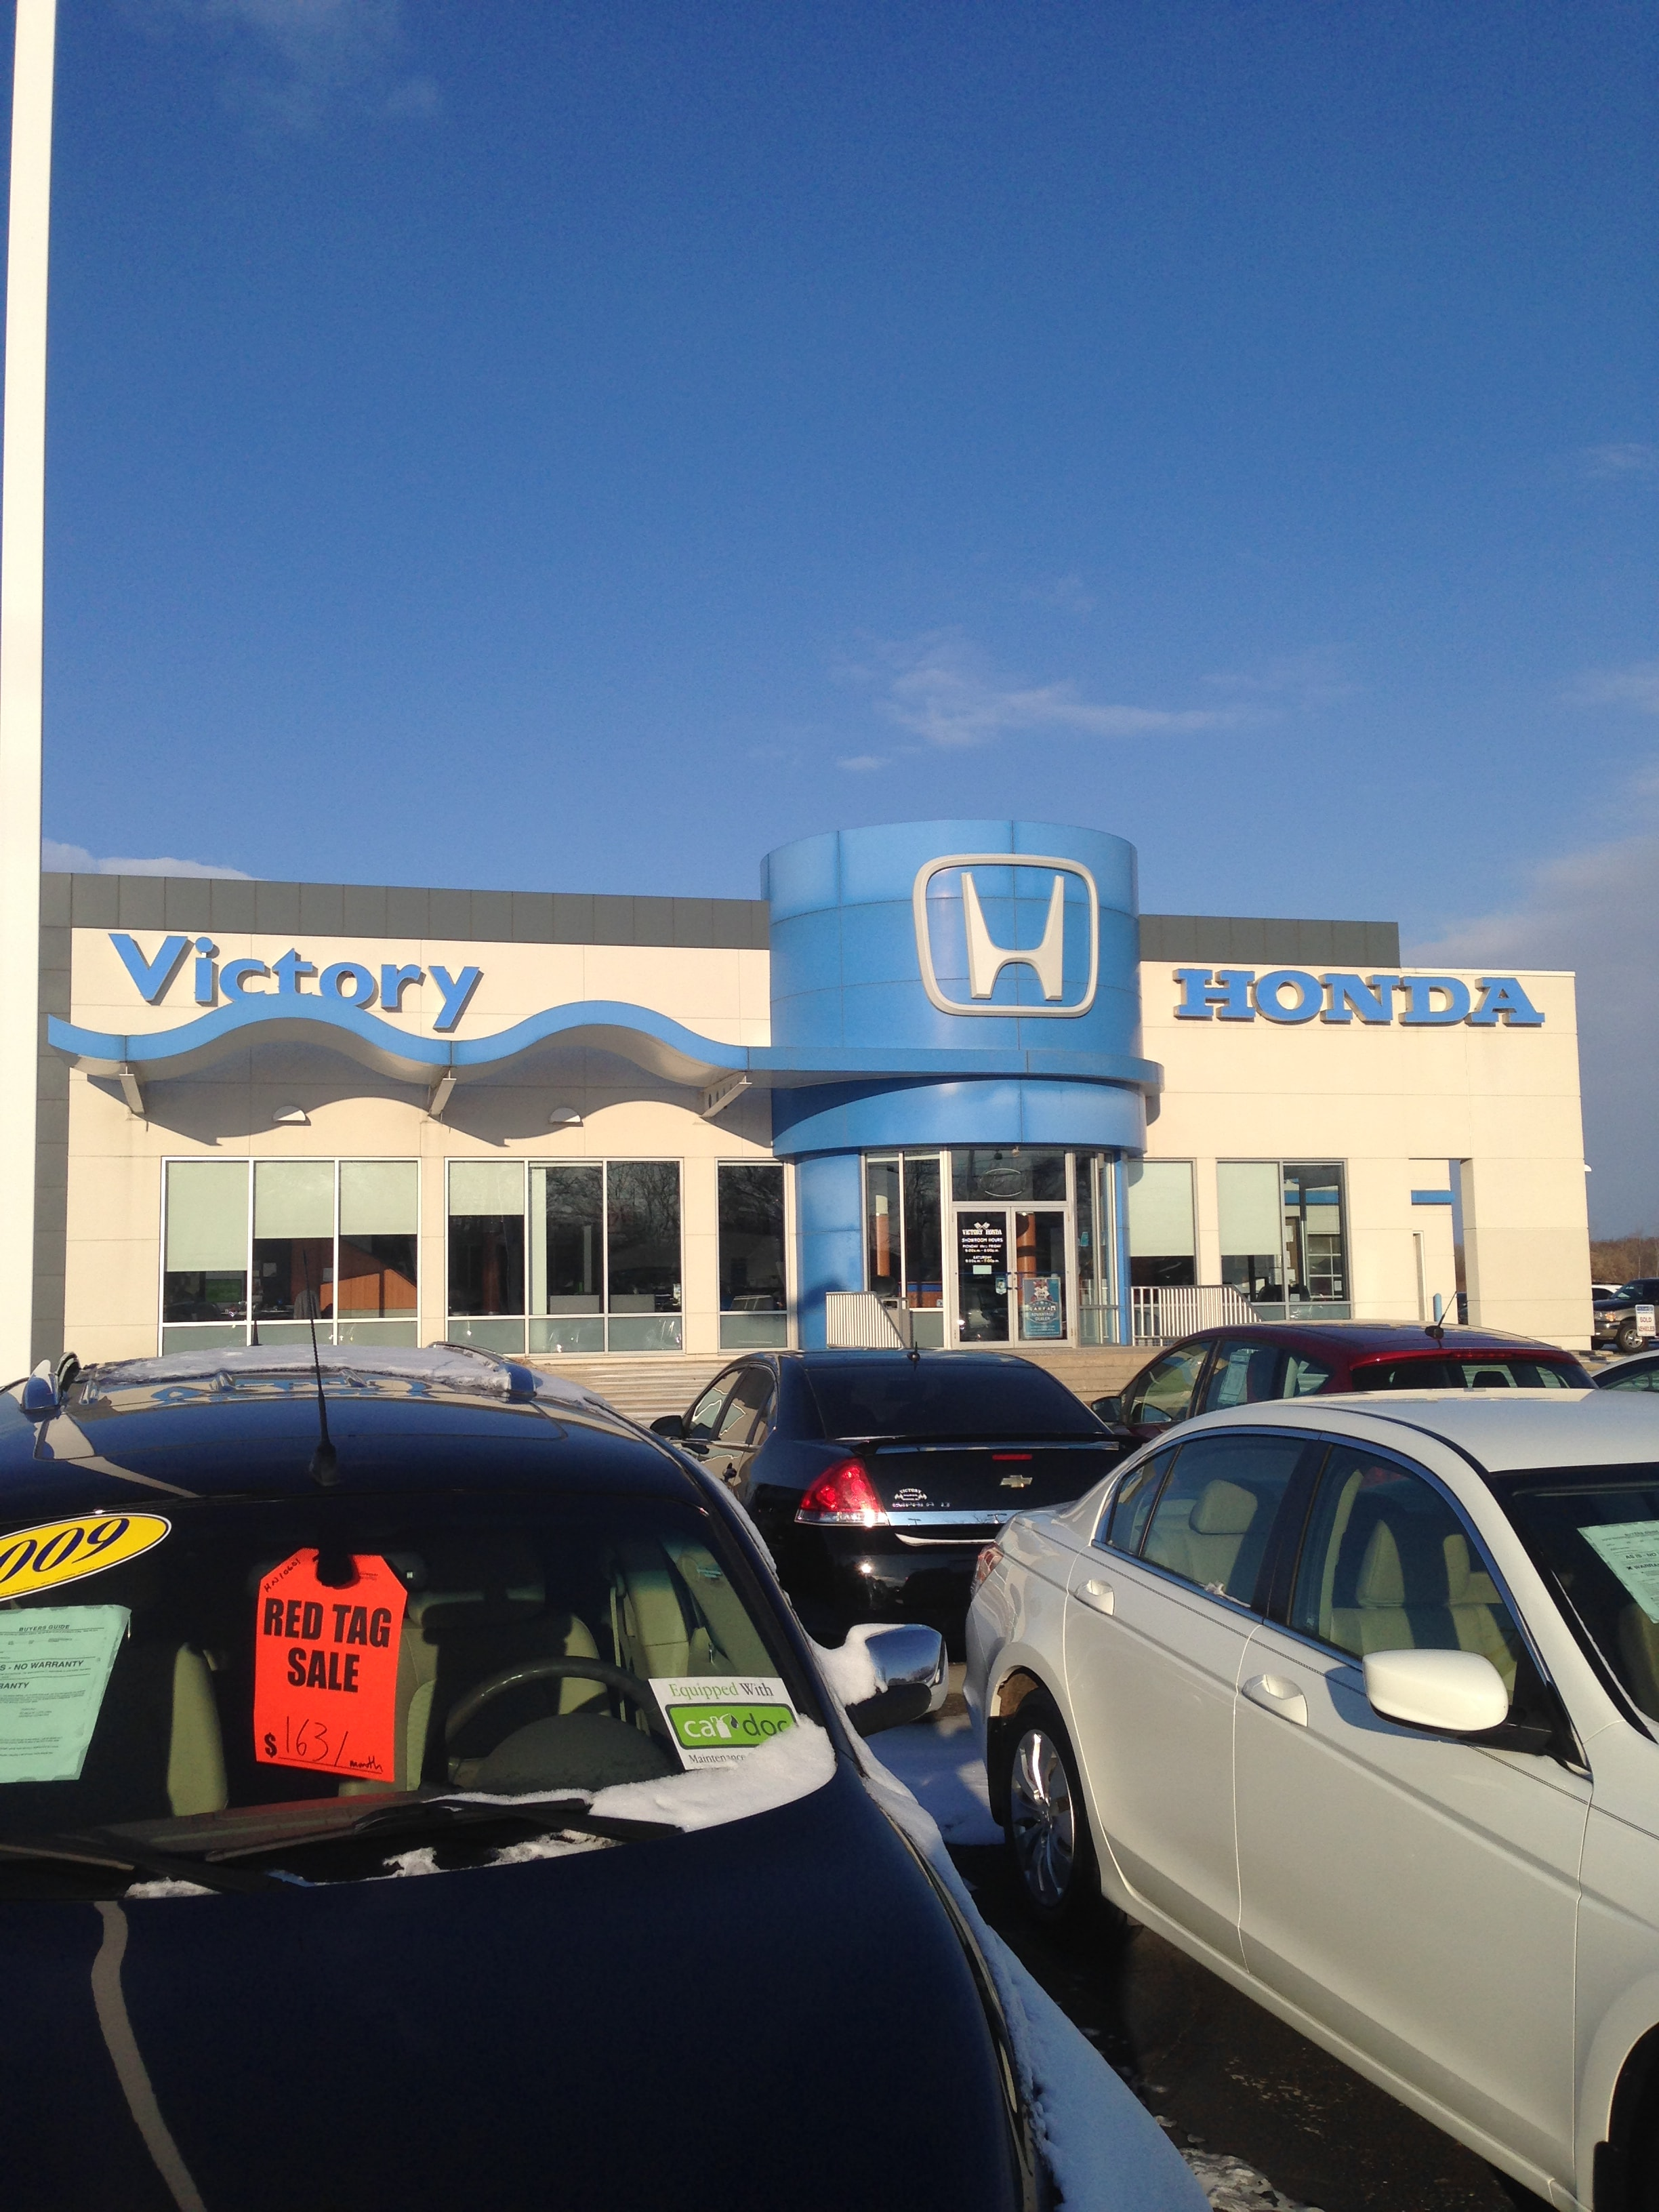 Honda Lease Termination Center, Dealer Serving Detroit MI and Toledo OH